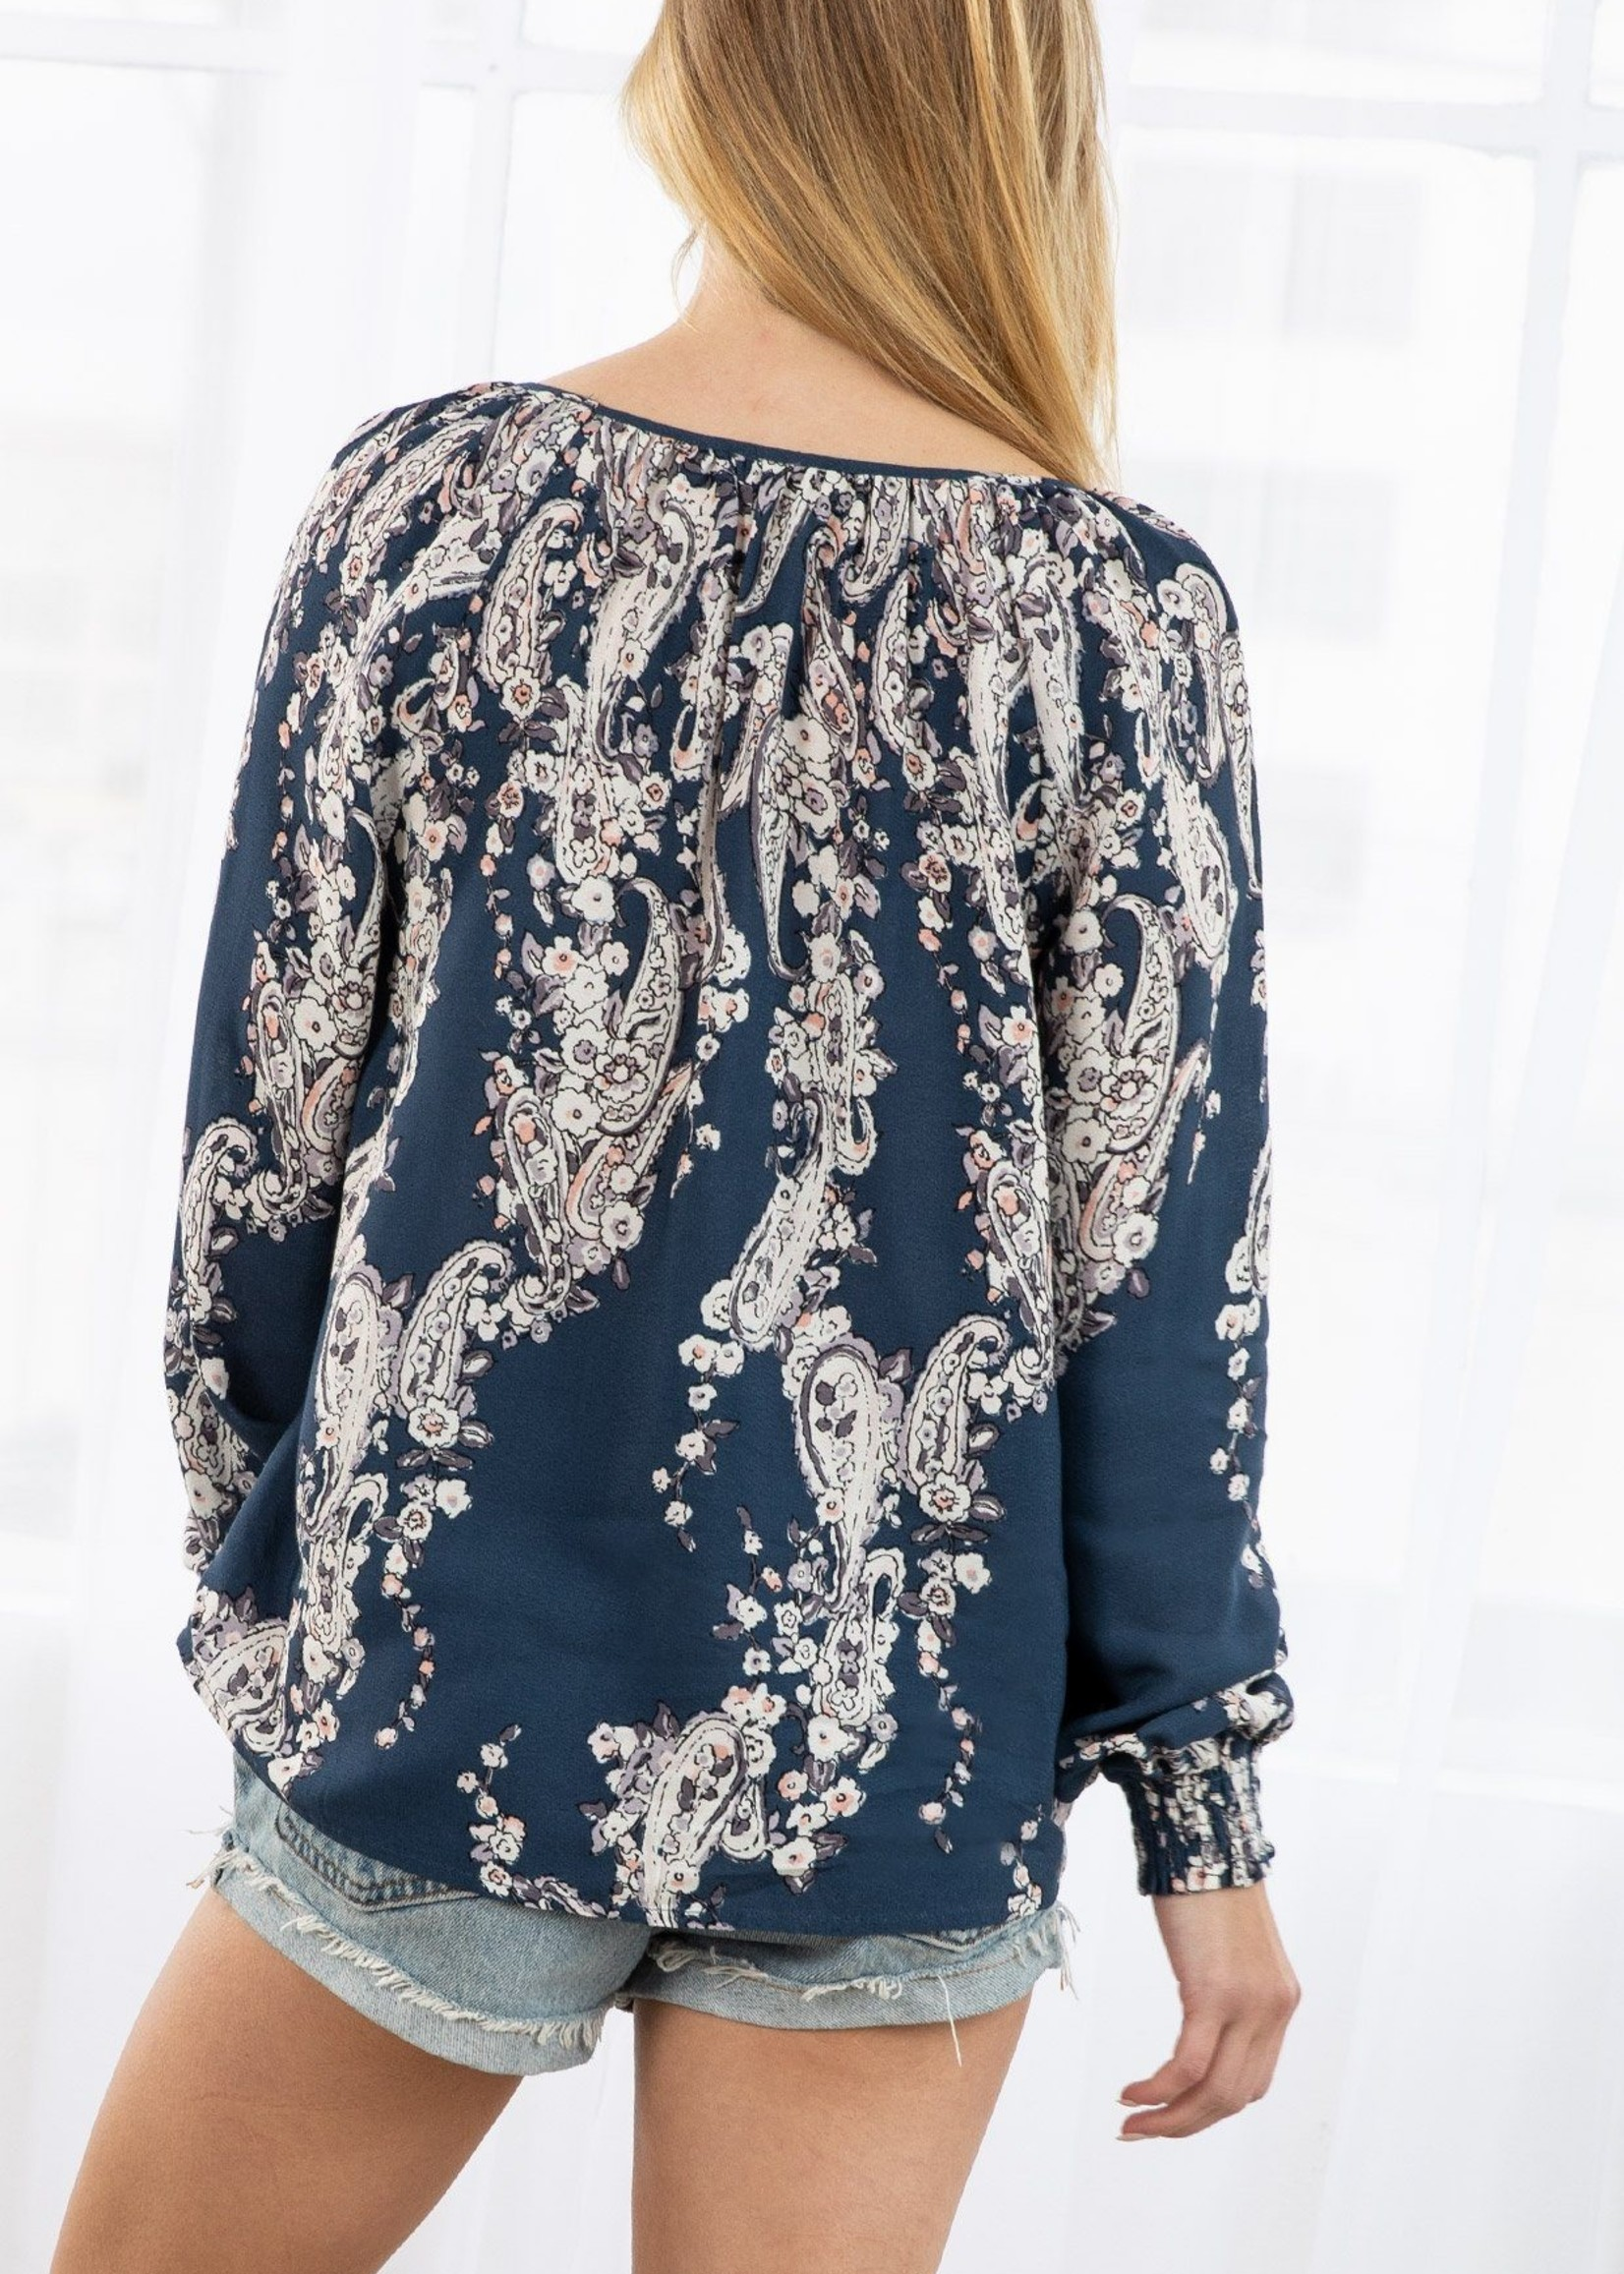 Cassis Floral Top